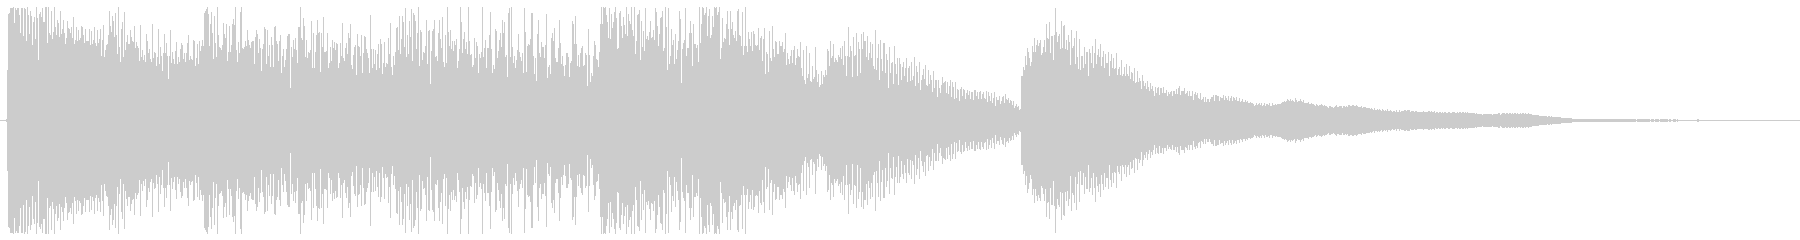 Created with sound logo and piano solo's unreproduced waveform